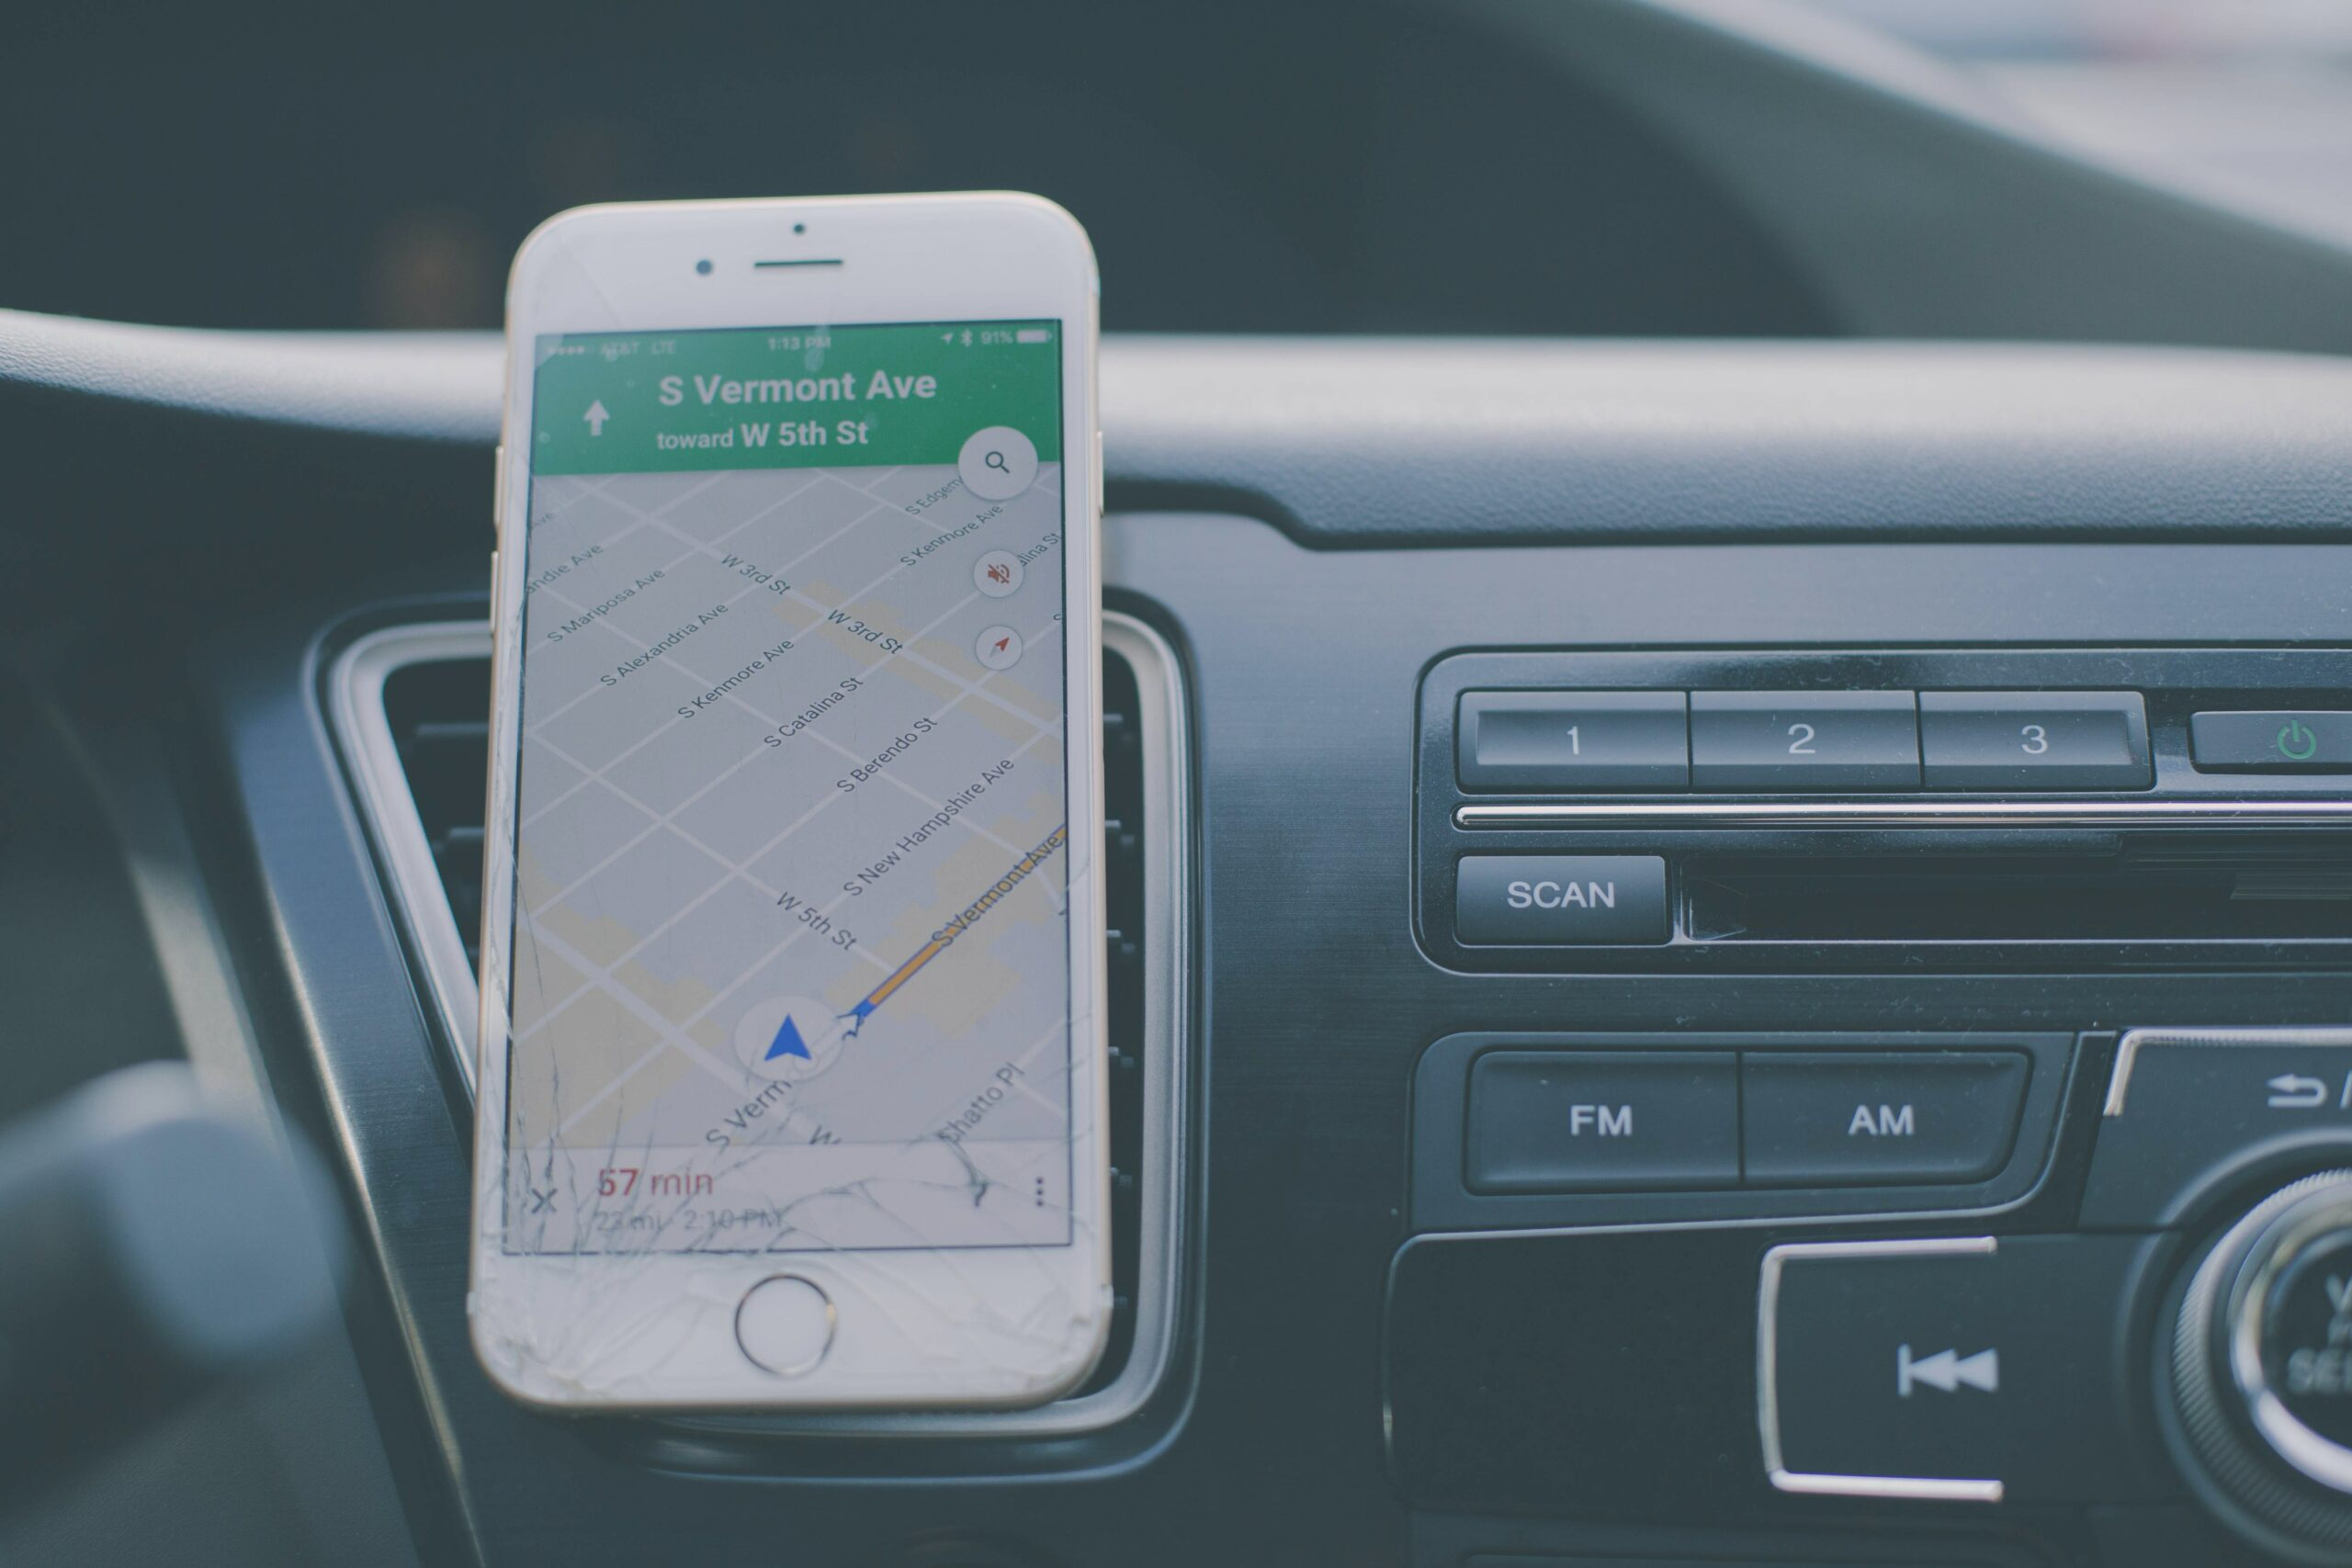 Should I Use Built-in Navigation, or My Smartphone? MILTA Technology